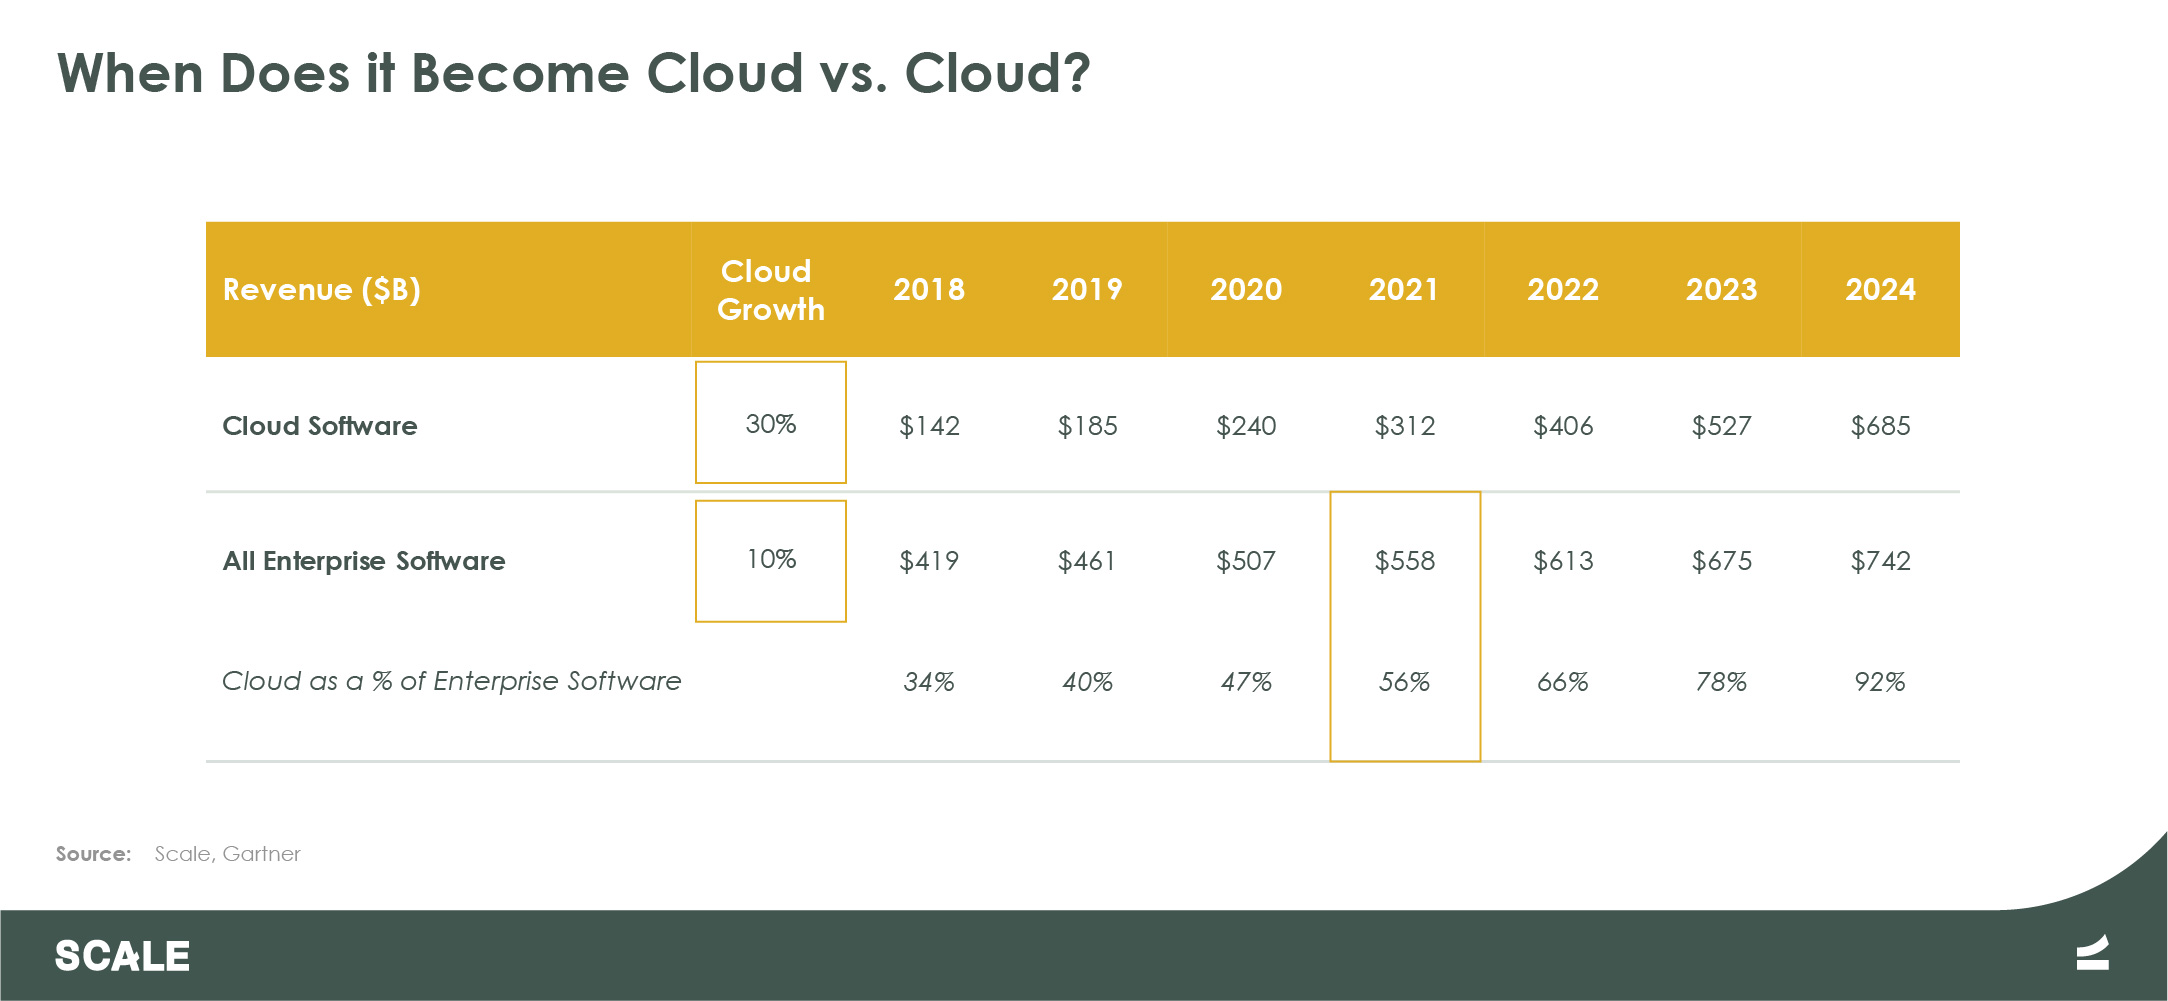 When Does it Become Cloud versus Cloud